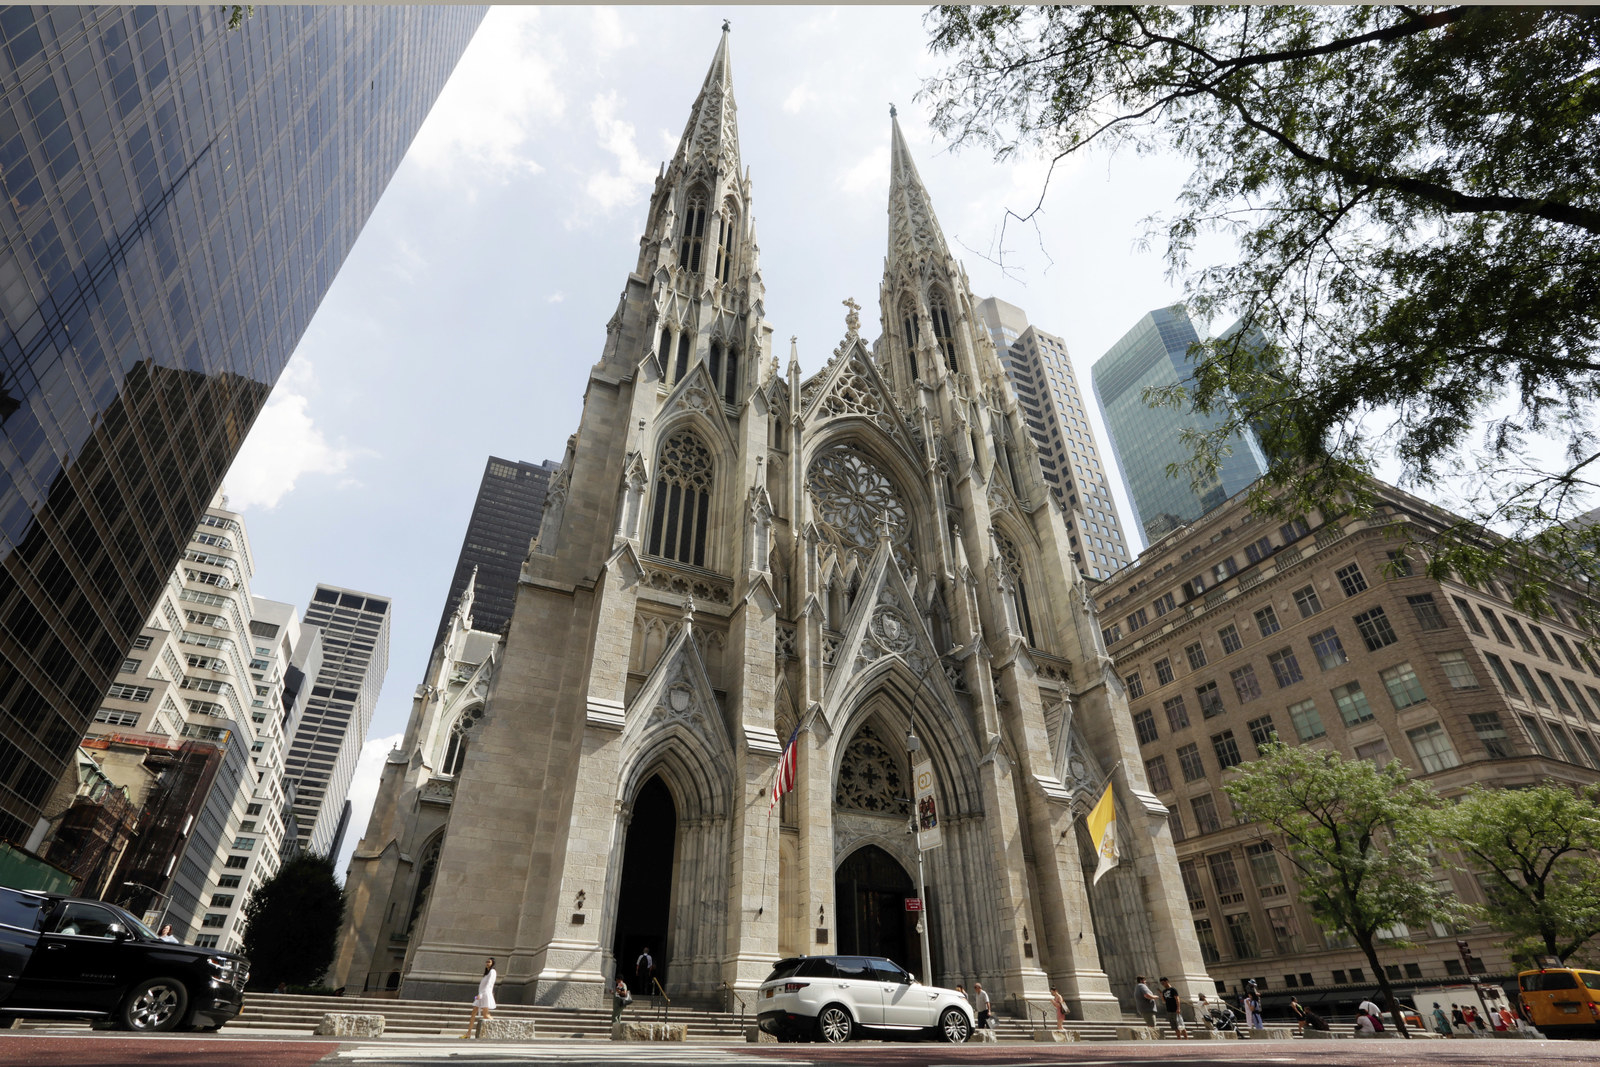 The Man Arrested With Gas Cans And Lighters At St. Patrick Cathedral Has Been Identified